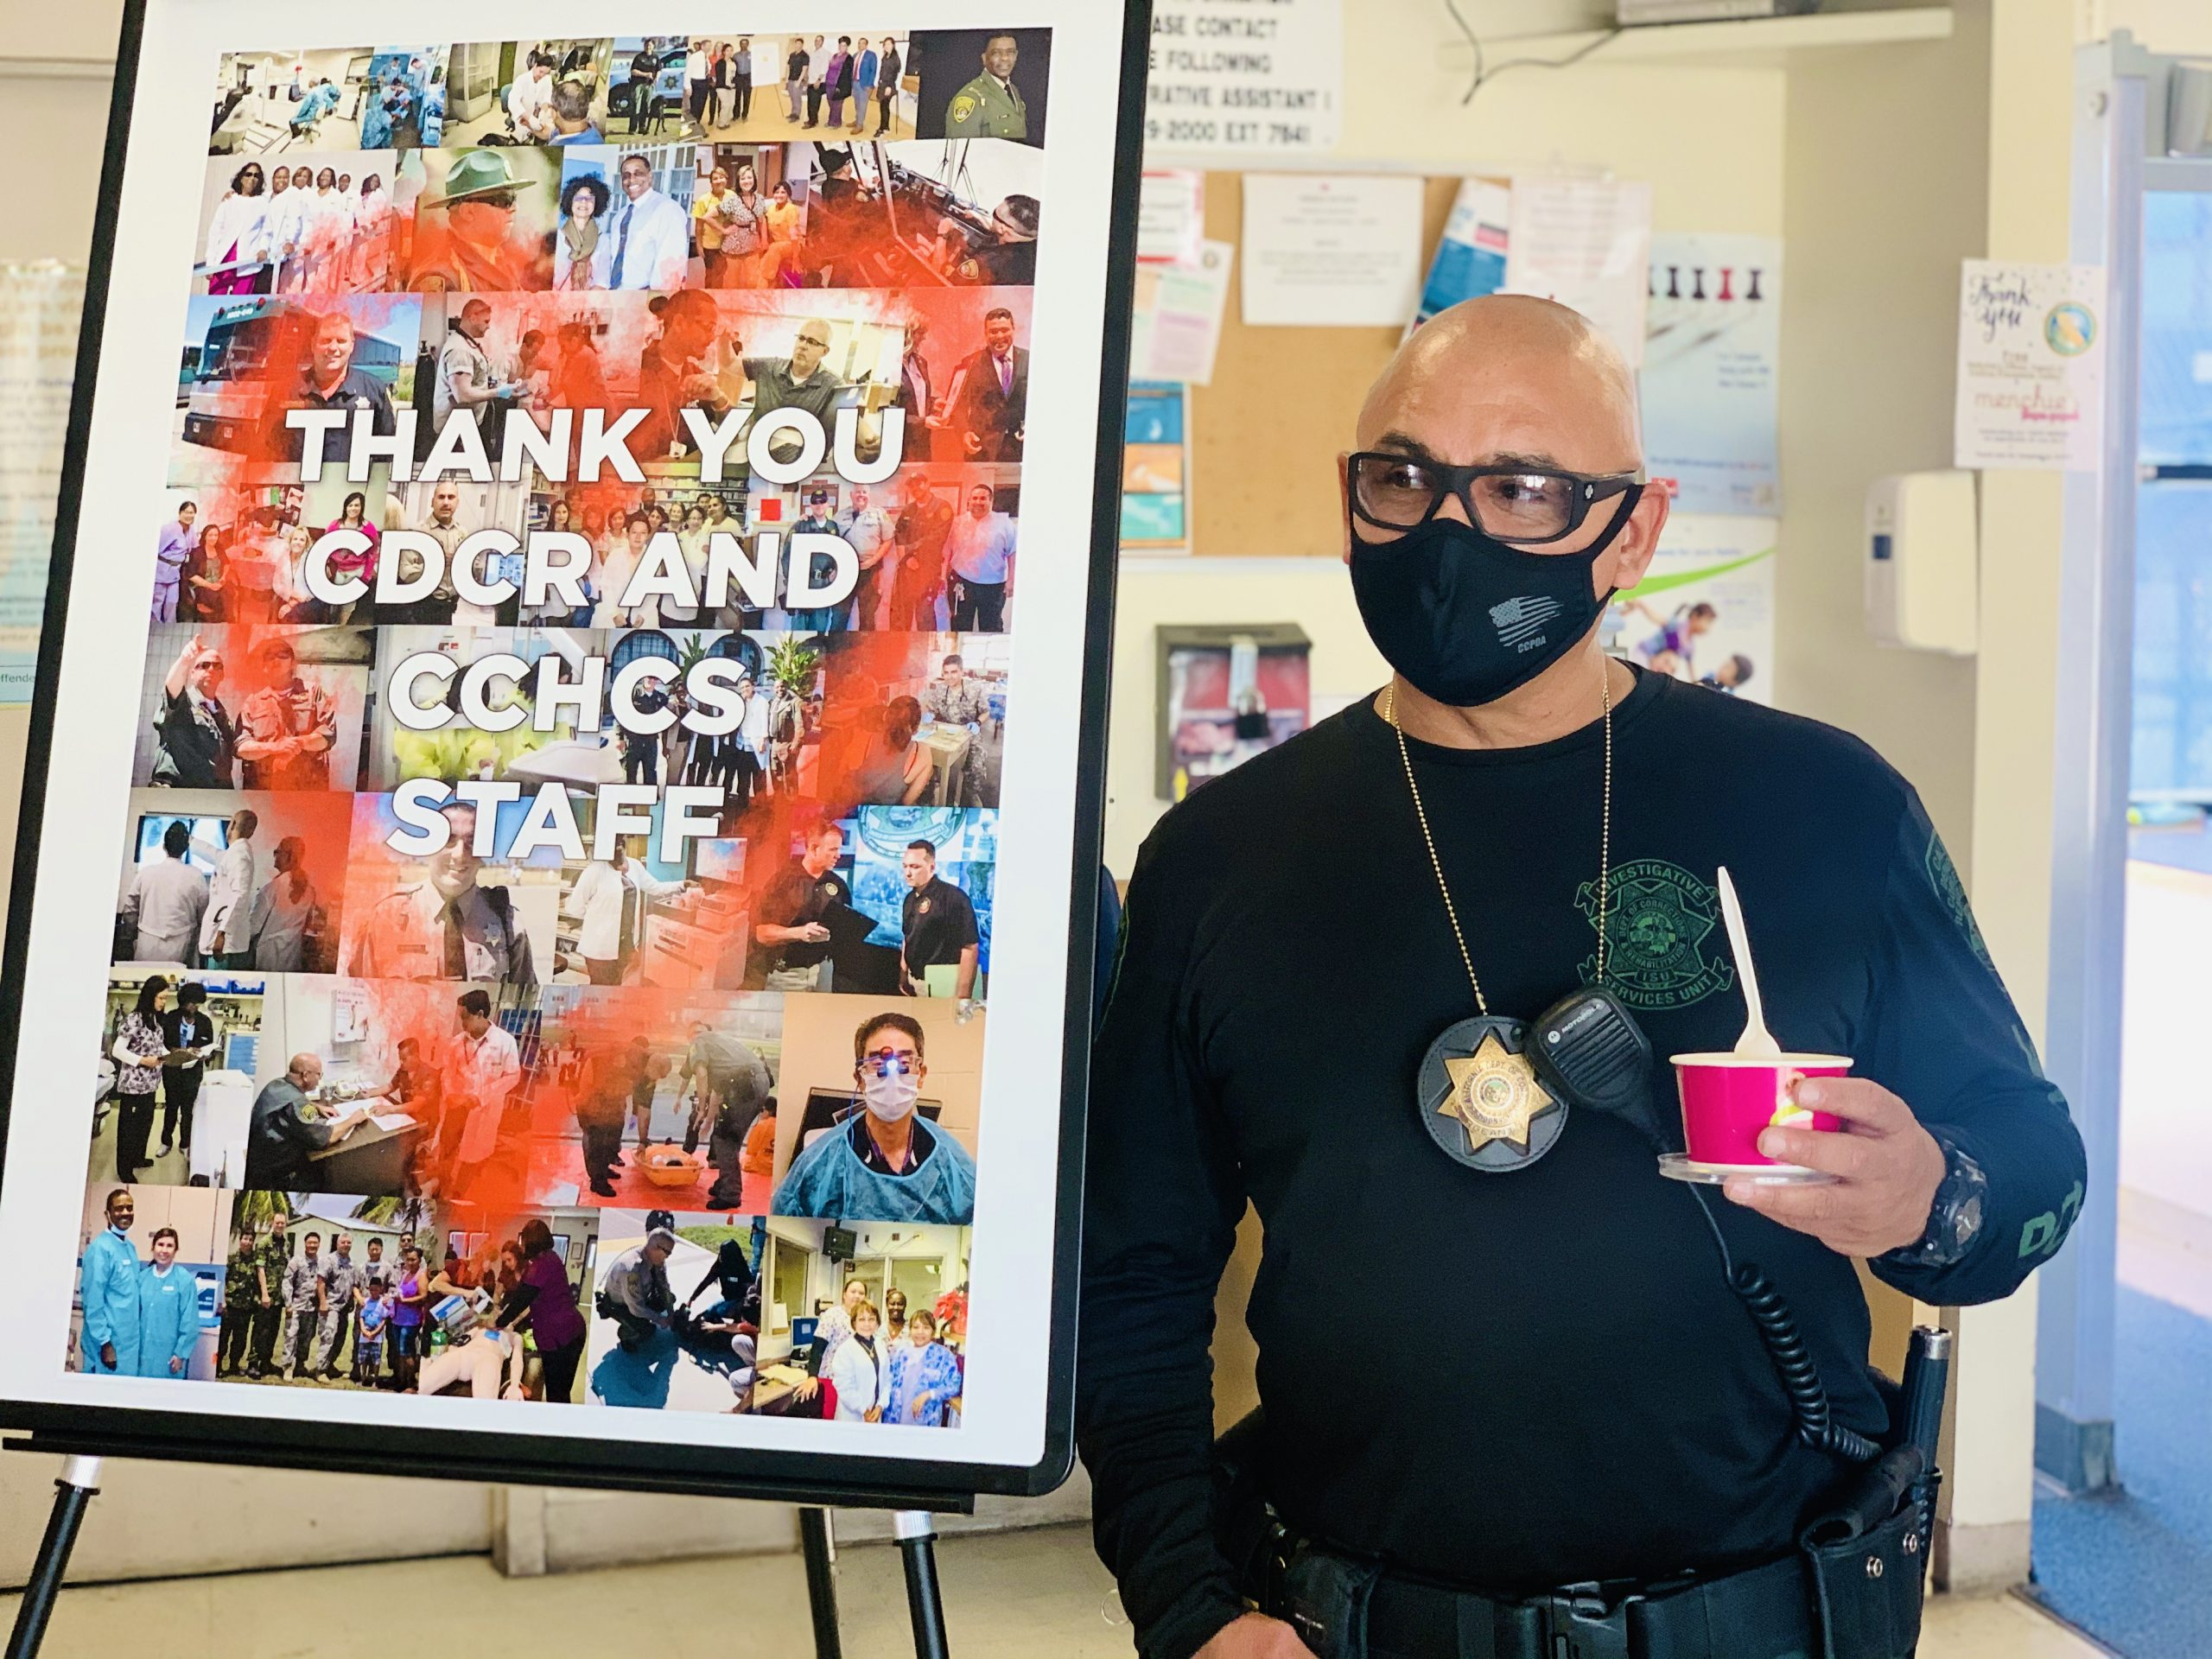 """Correctional sergeant holds frozen yogurt while standing beside a sign that reads """"Thank you CDCR and CCHCS staff."""""""